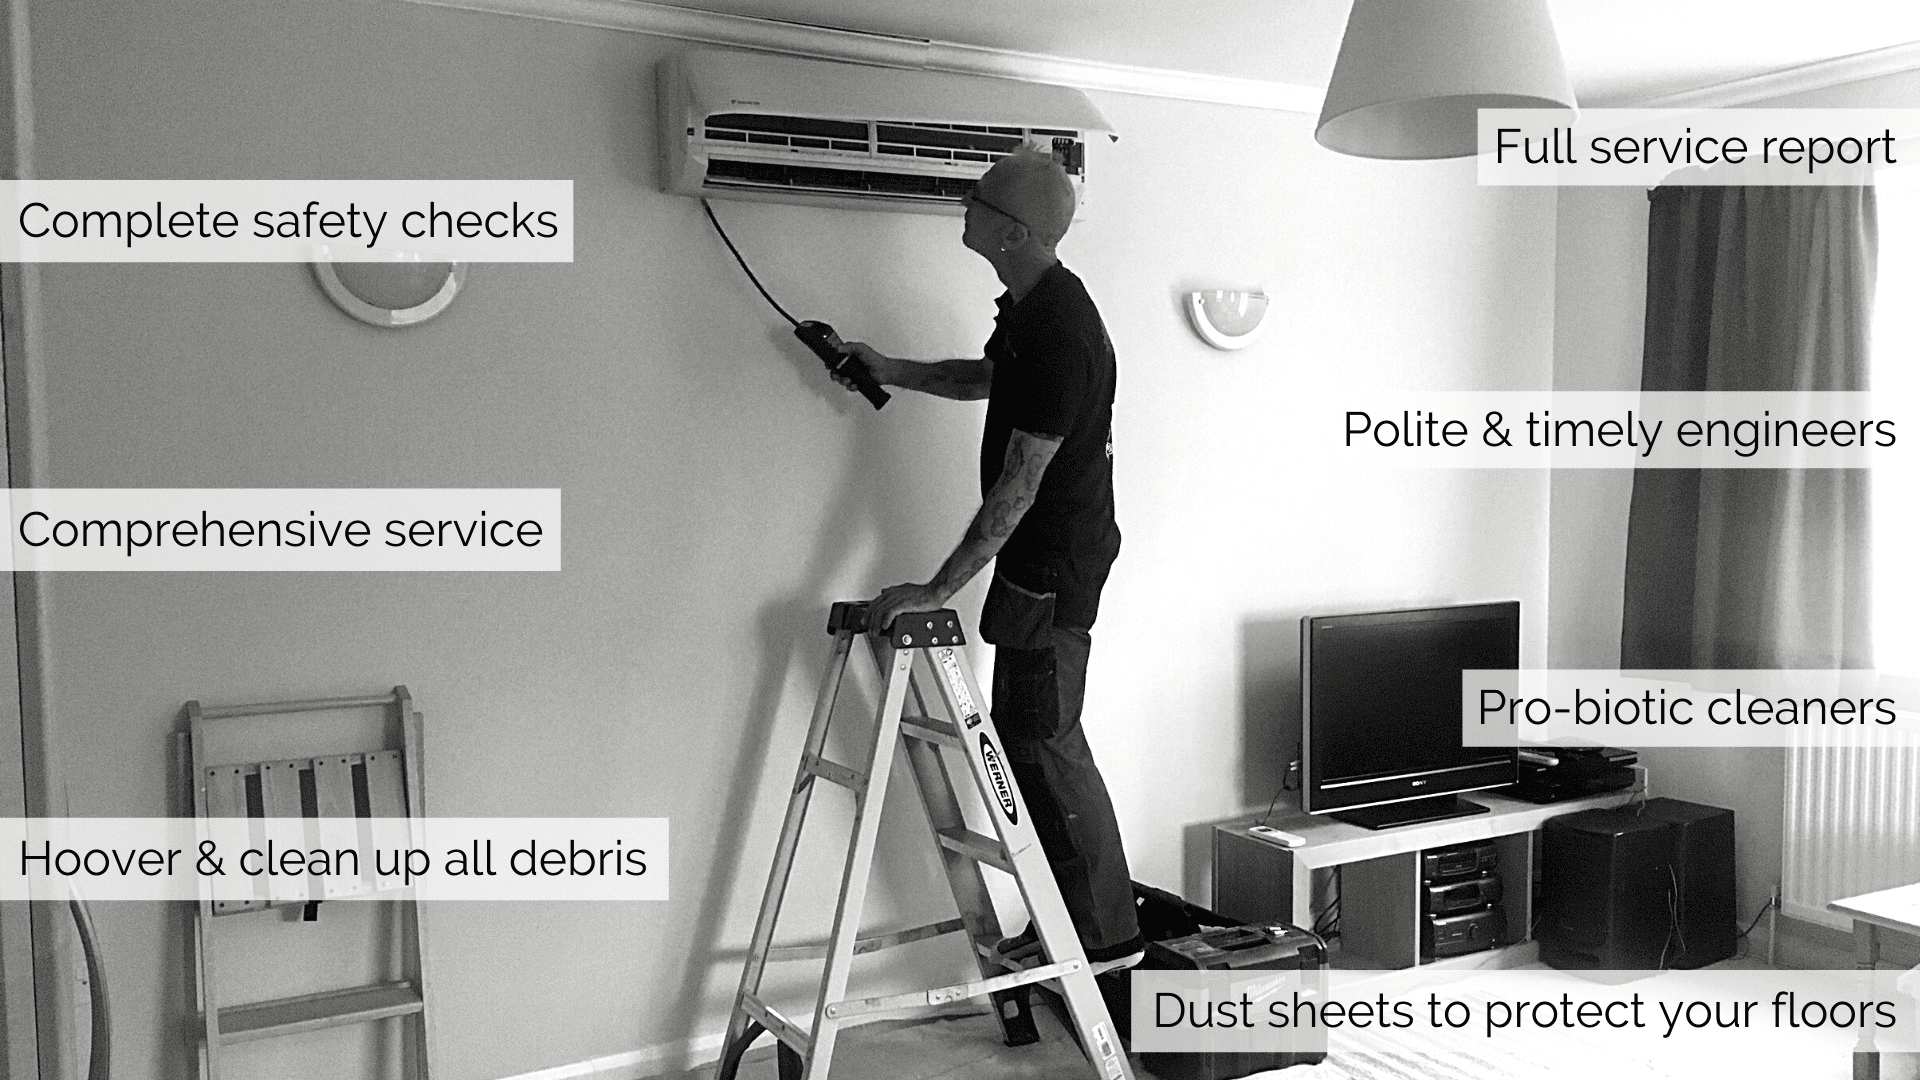 What's in a SubCool service? Complete safety checks, comprehensive service, hoover and clean up debris, full service report, polite and timely engineers, pro-biotic cleaners, dust sheets to protect floors